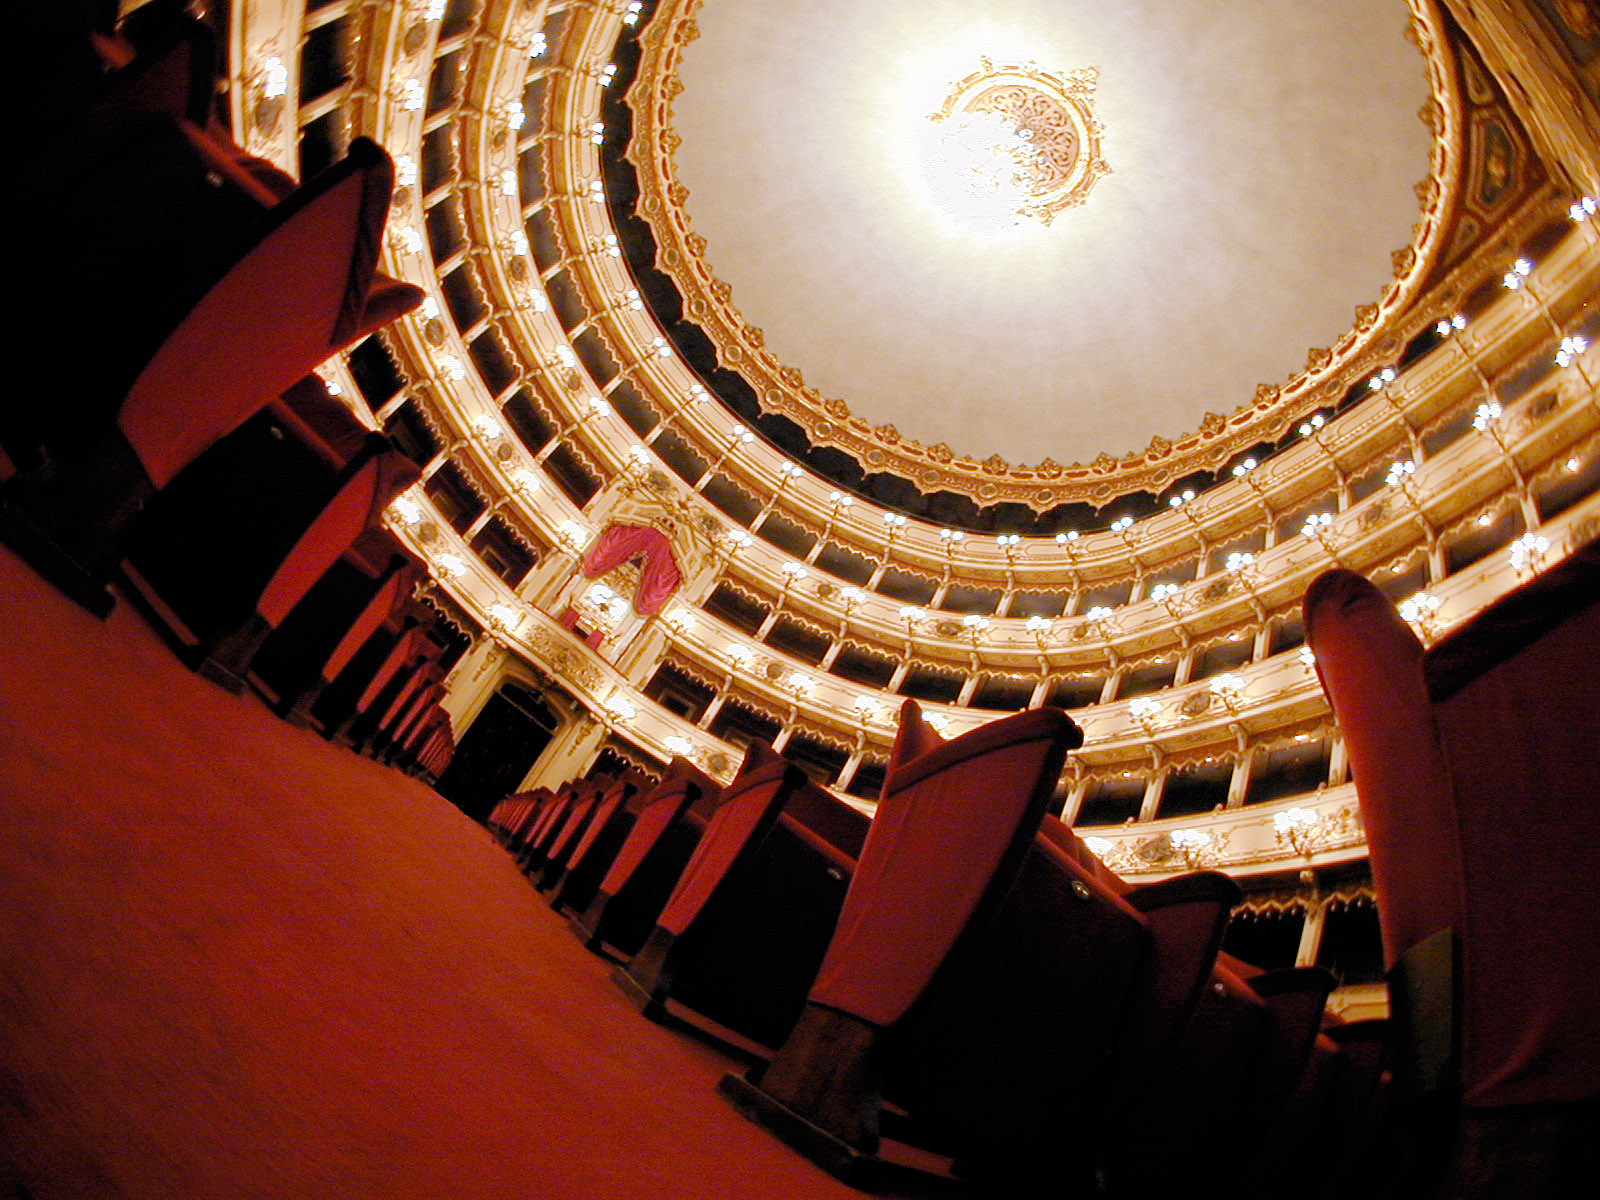 A view of a theater's domed ceiling. Red velvet chairs line the sides.